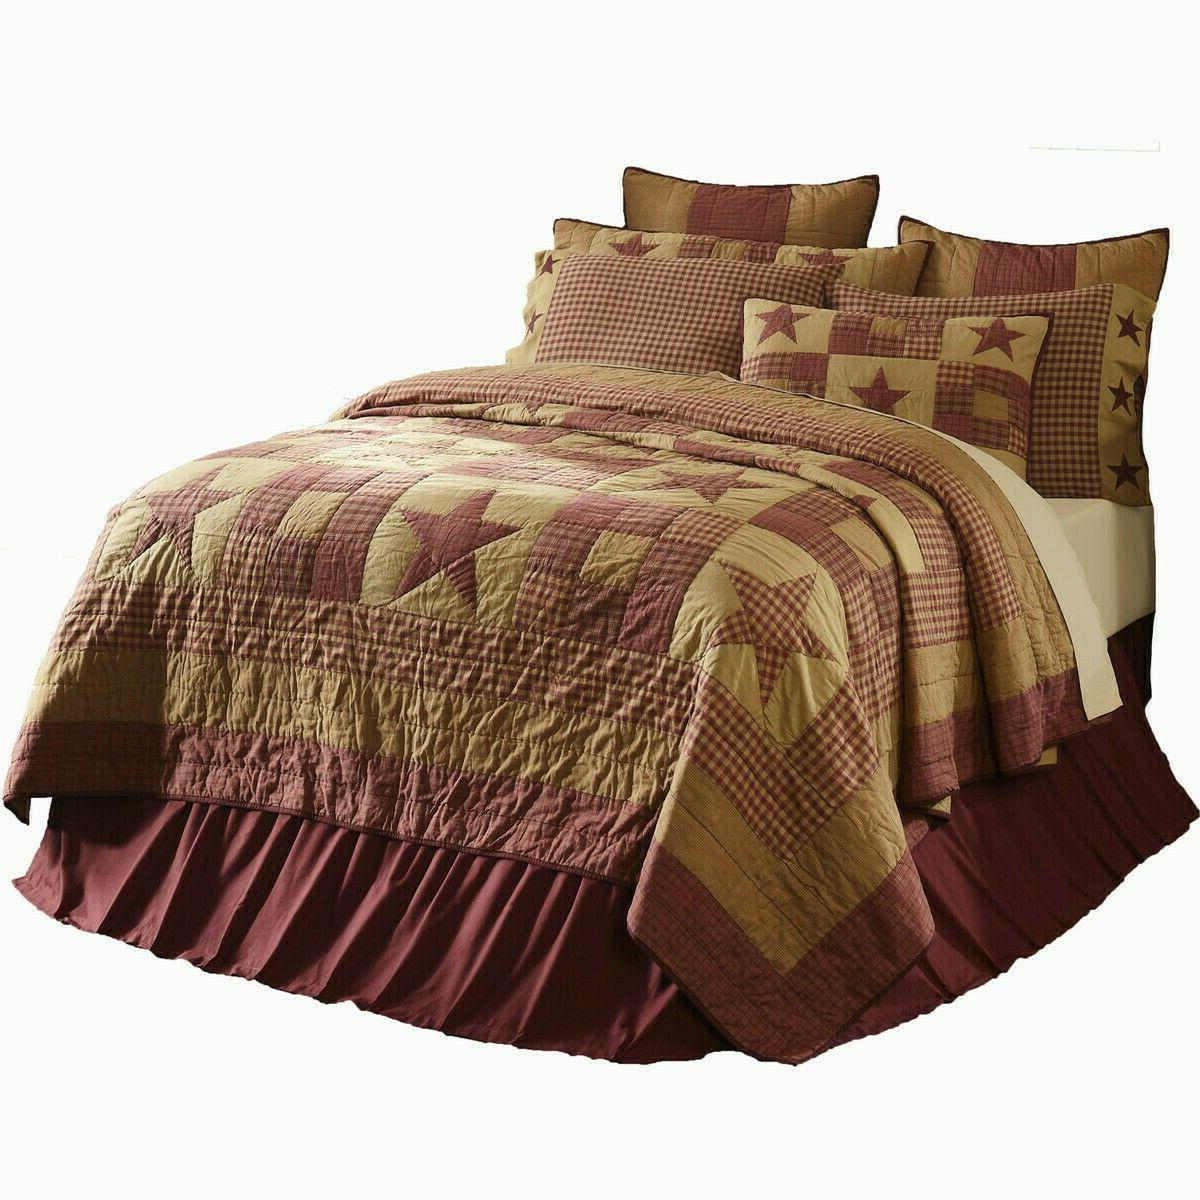 Ninepatch Star Burgundy & Tan Quilt Choices - COMPLETE YOUR